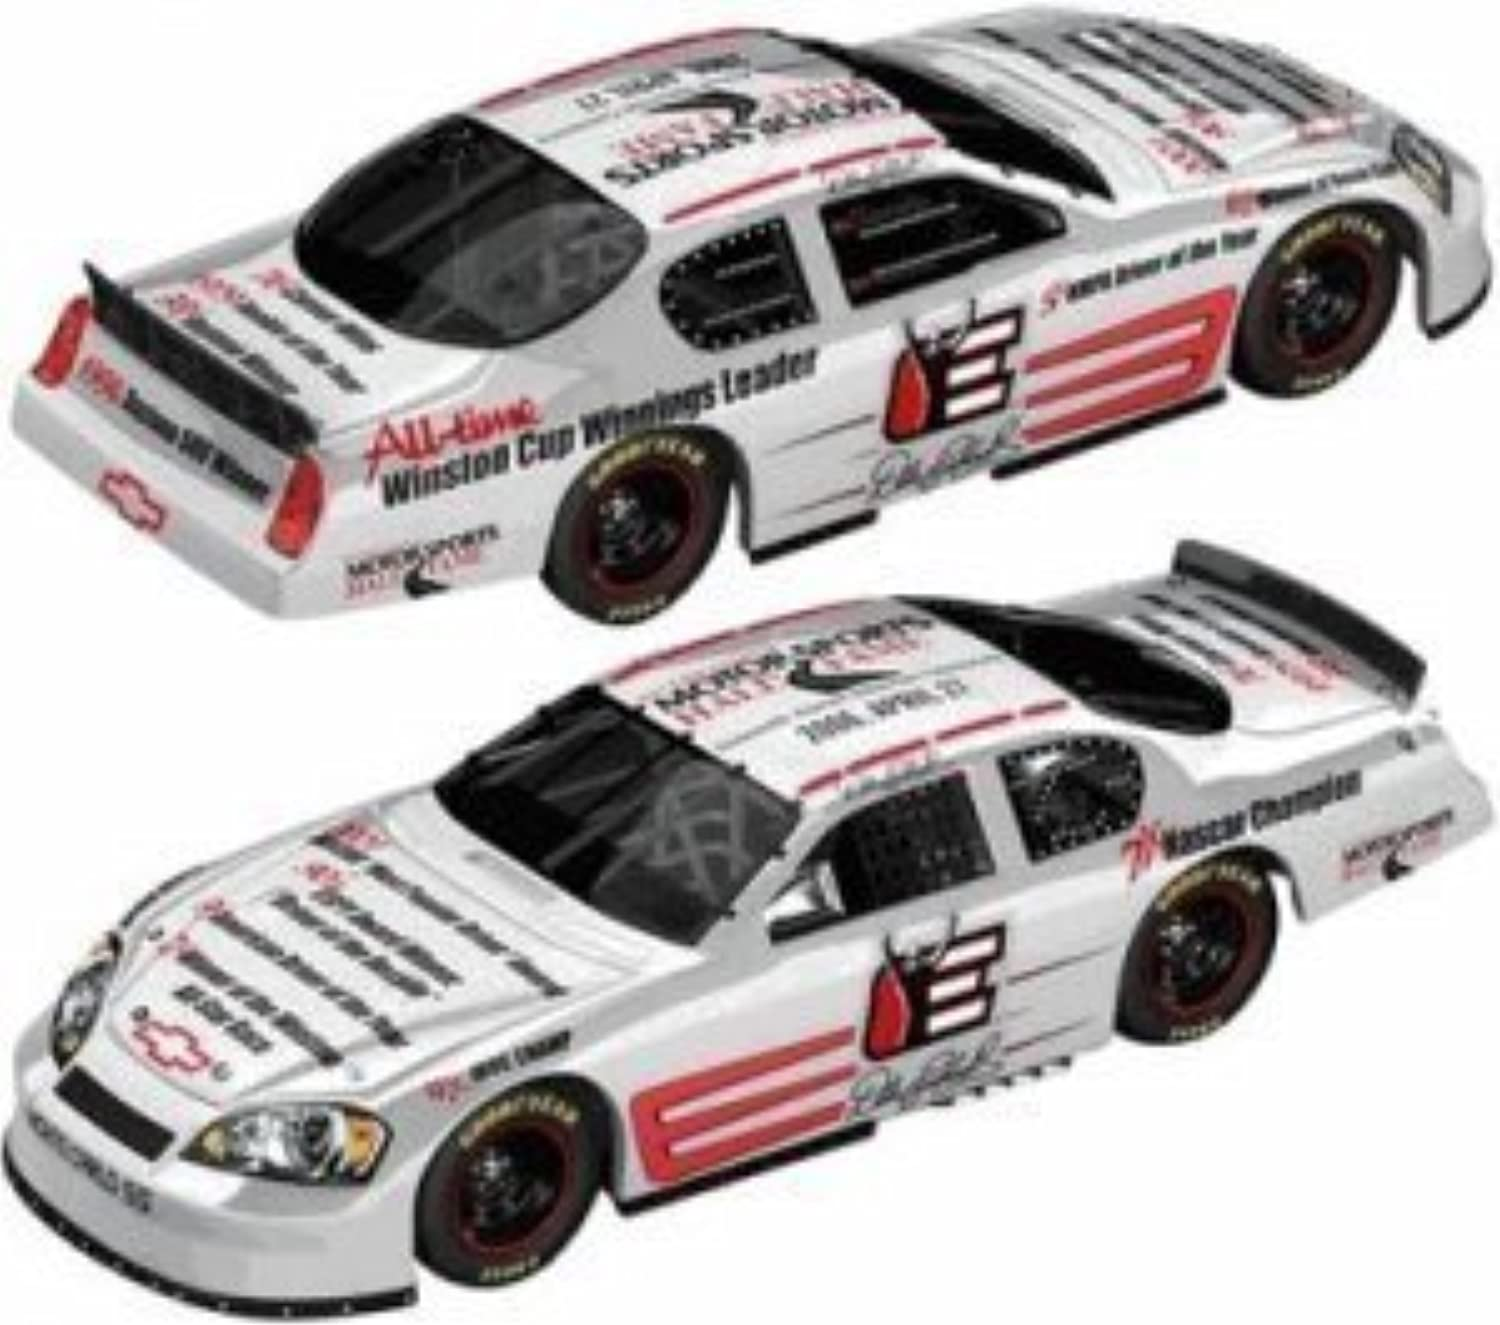 Dale Earnhardt Hall of Fame   2006 Monte Carlo SS   1 64 Scale Diecast Car by Unknown